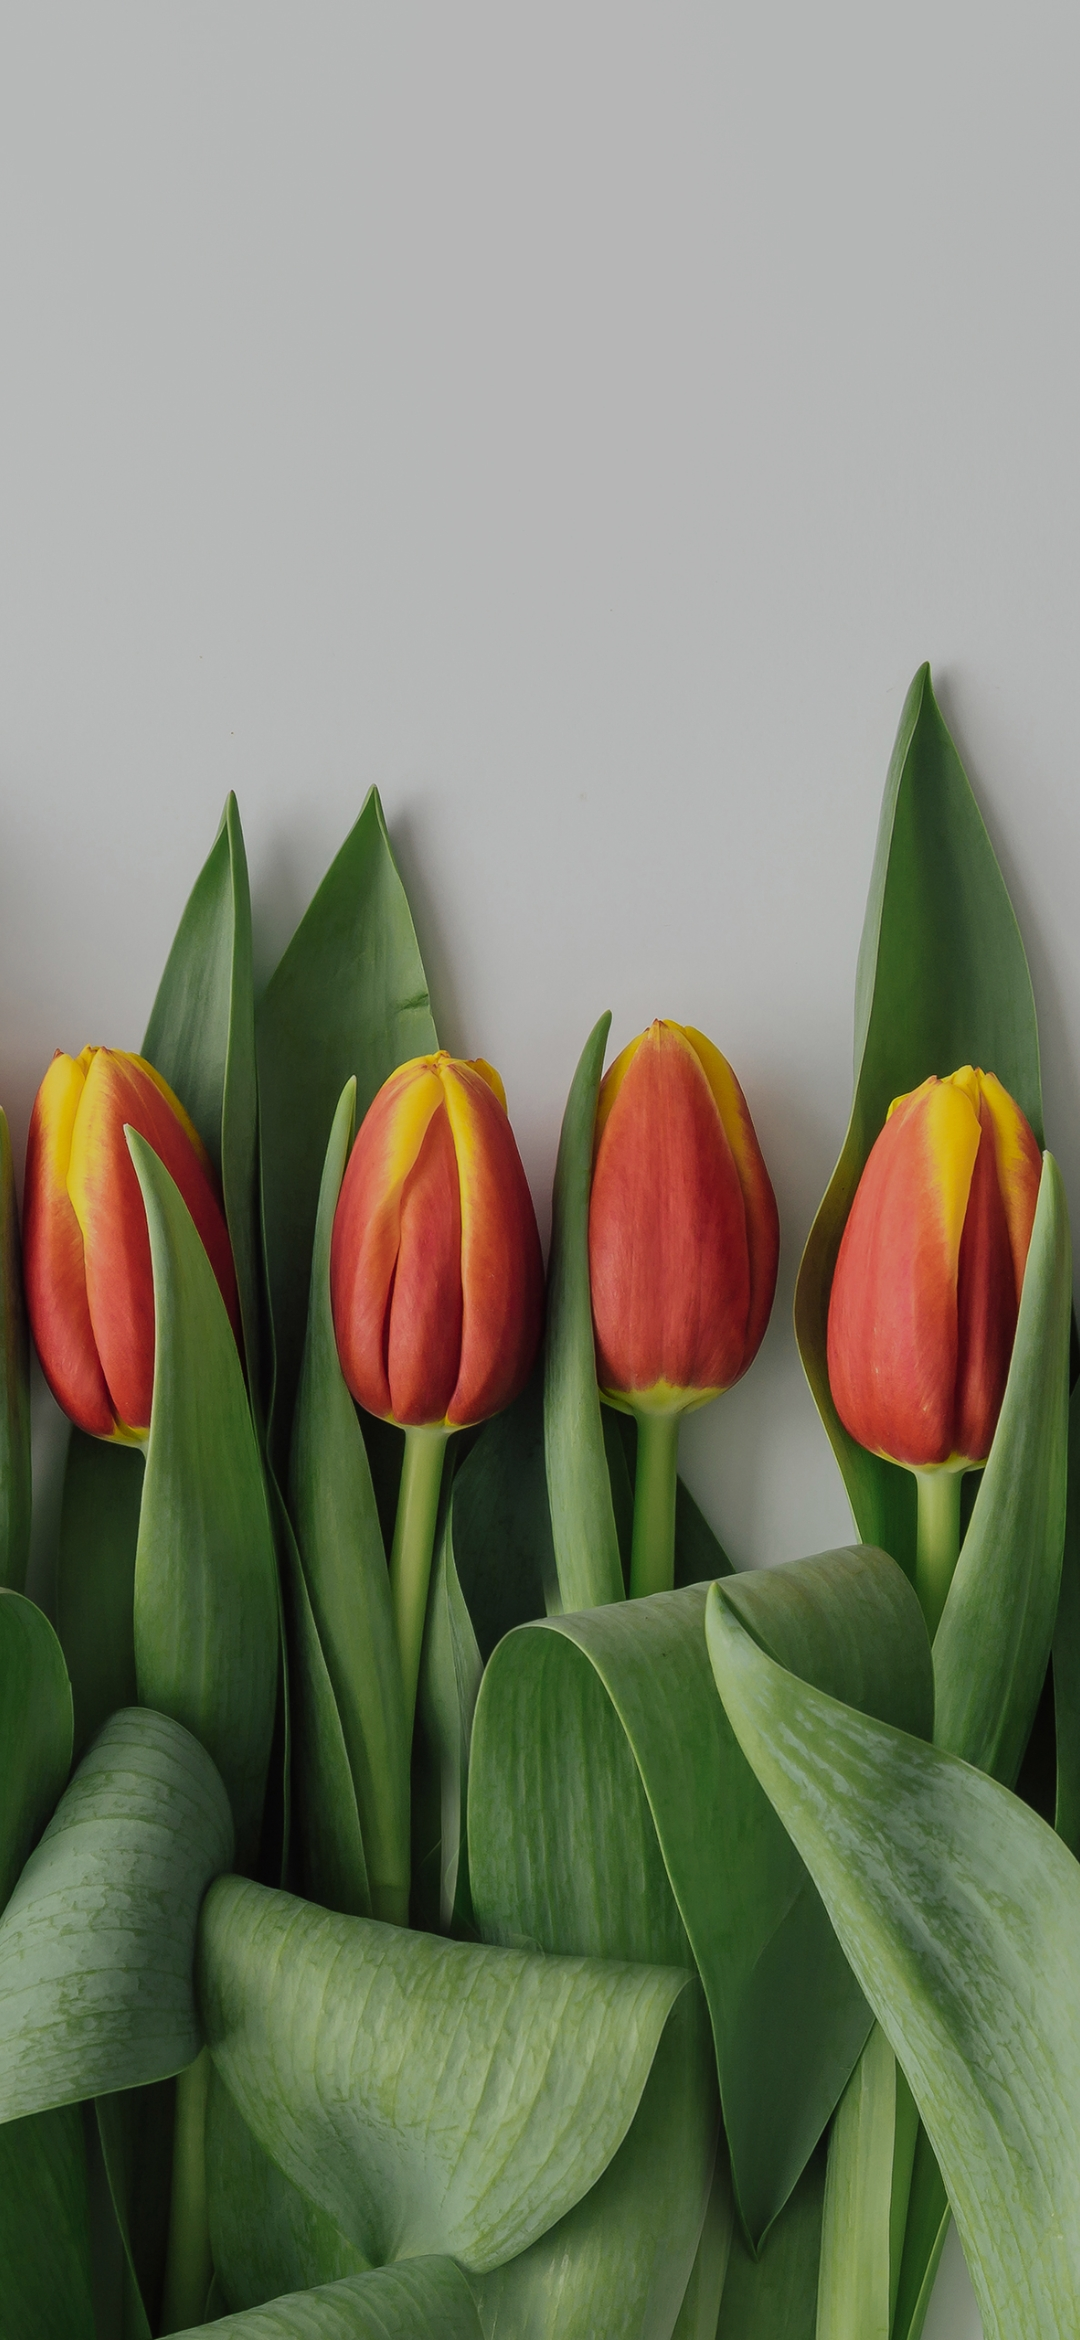 Flowers with plant leaves